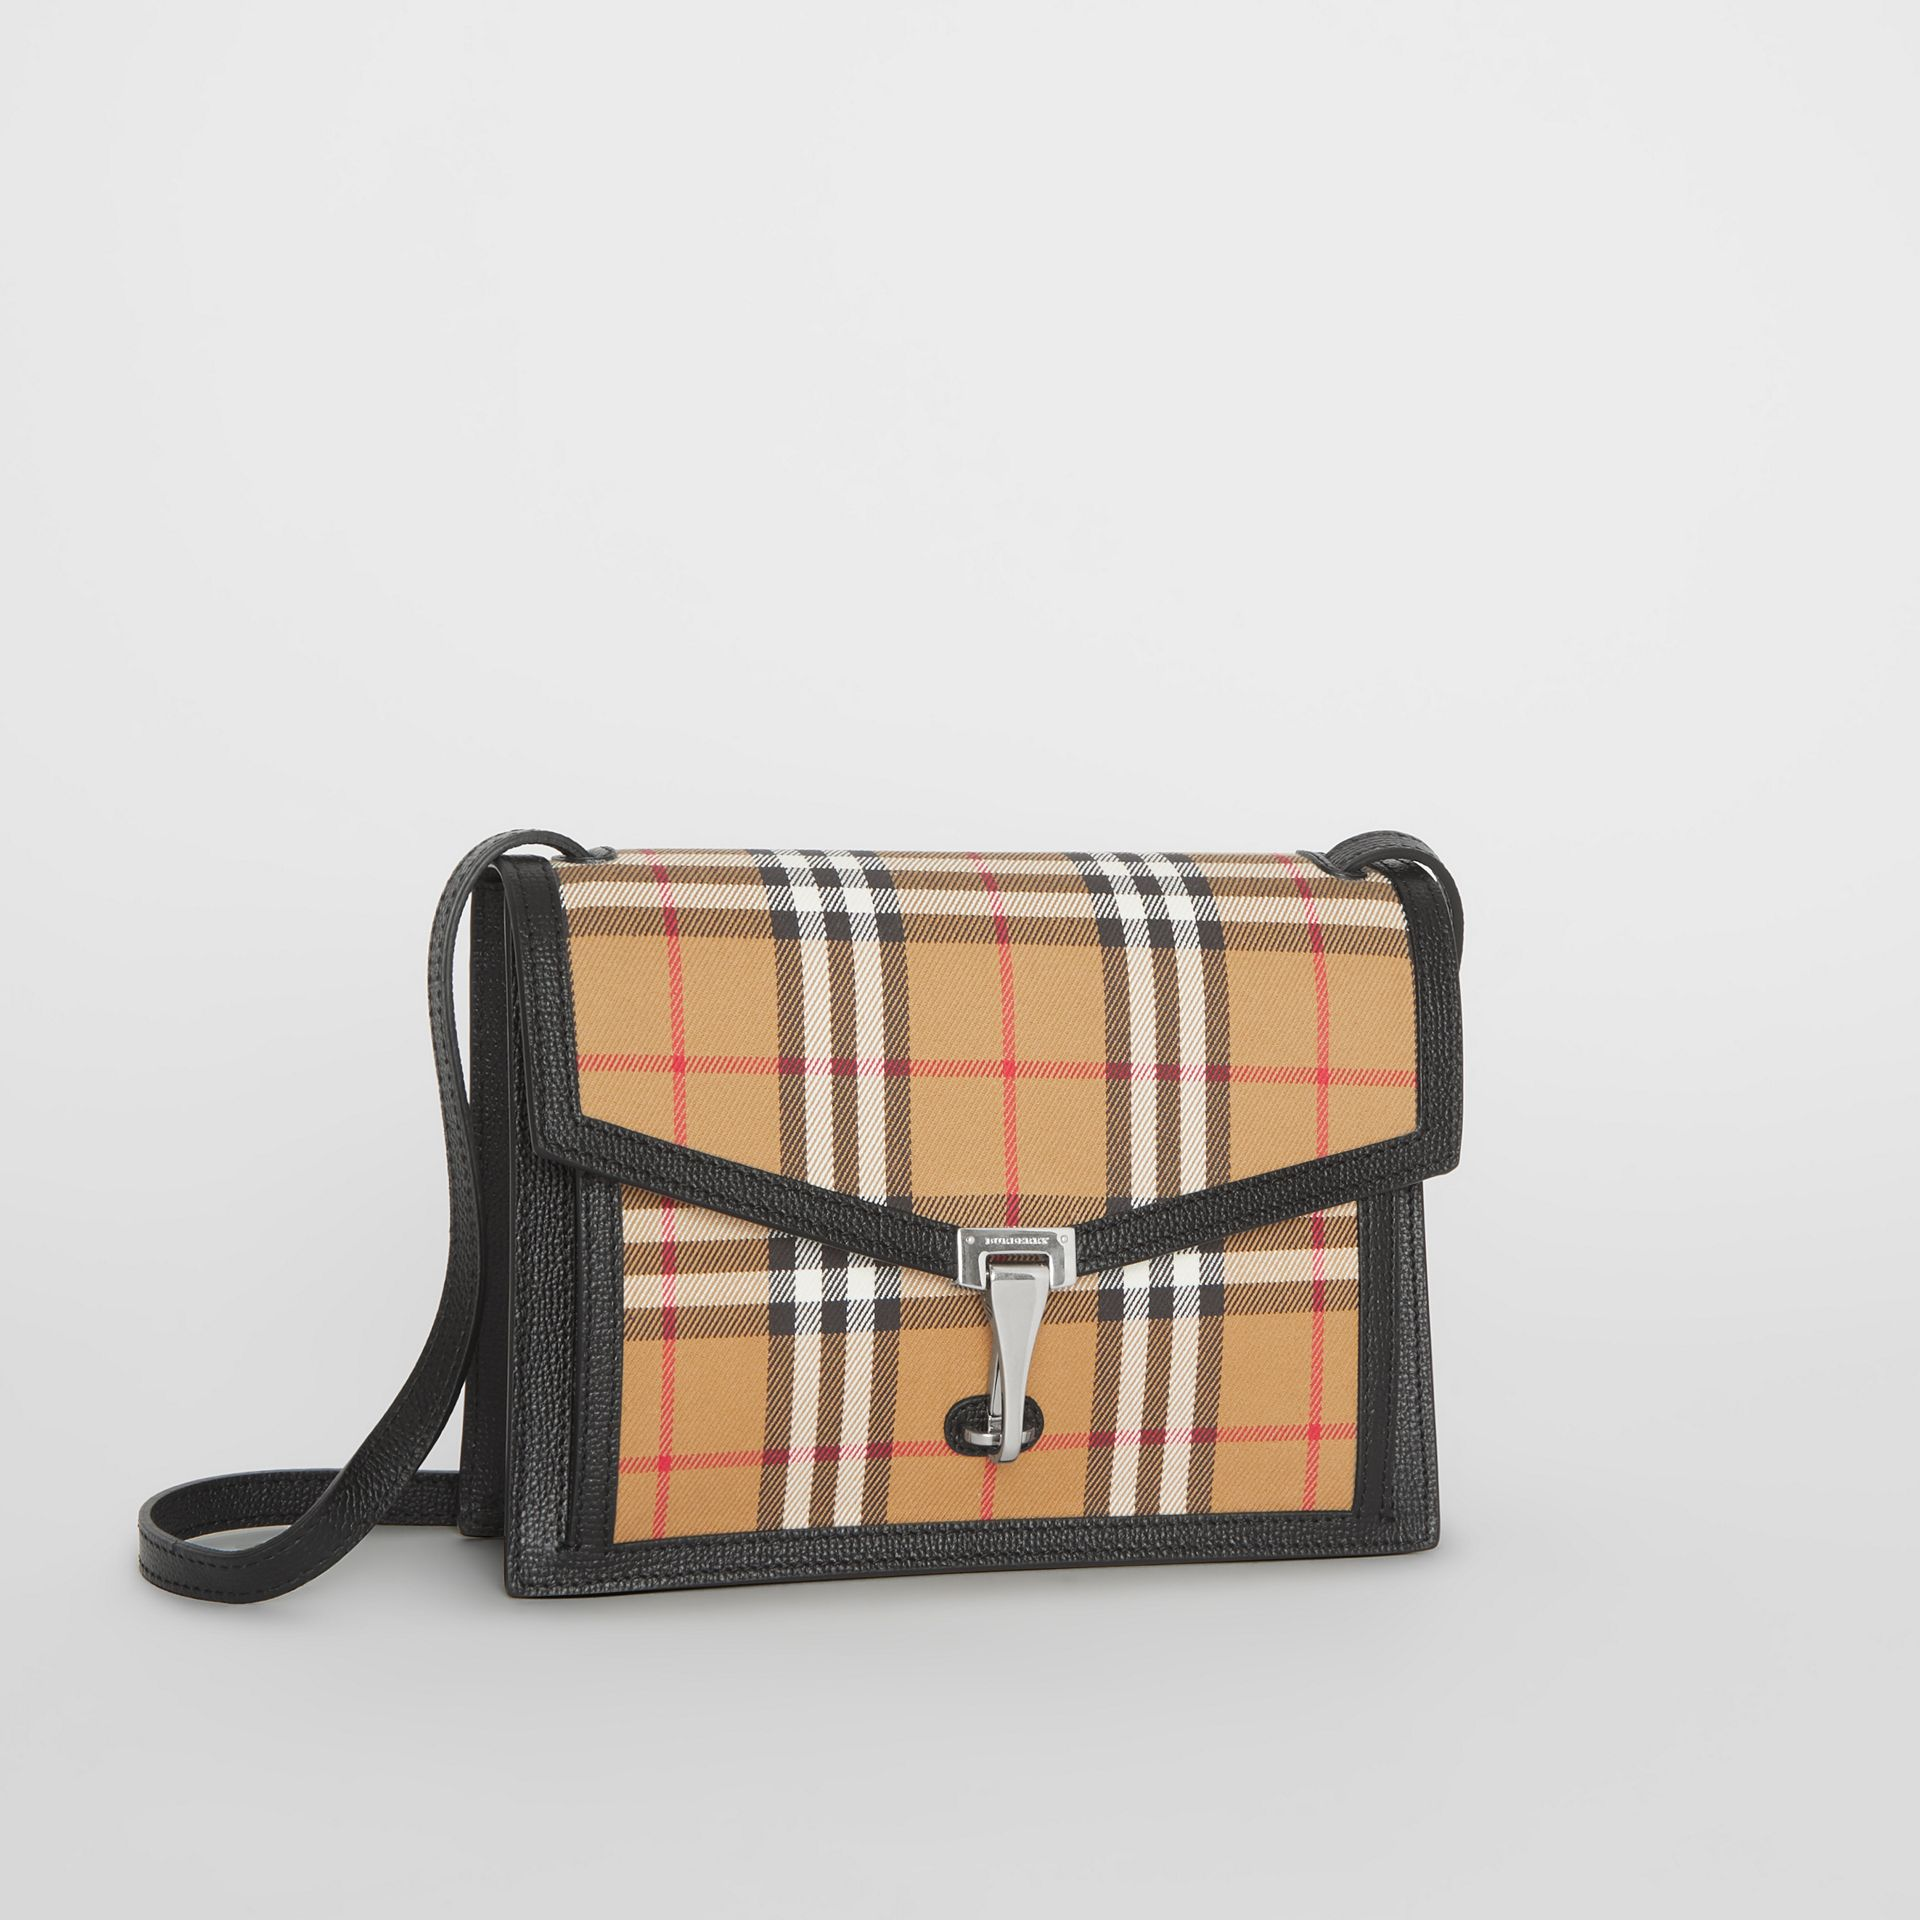 Small Vintage Check and Leather Crossbody Bag in Black - Women | Burberry United Kingdom - gallery image 6